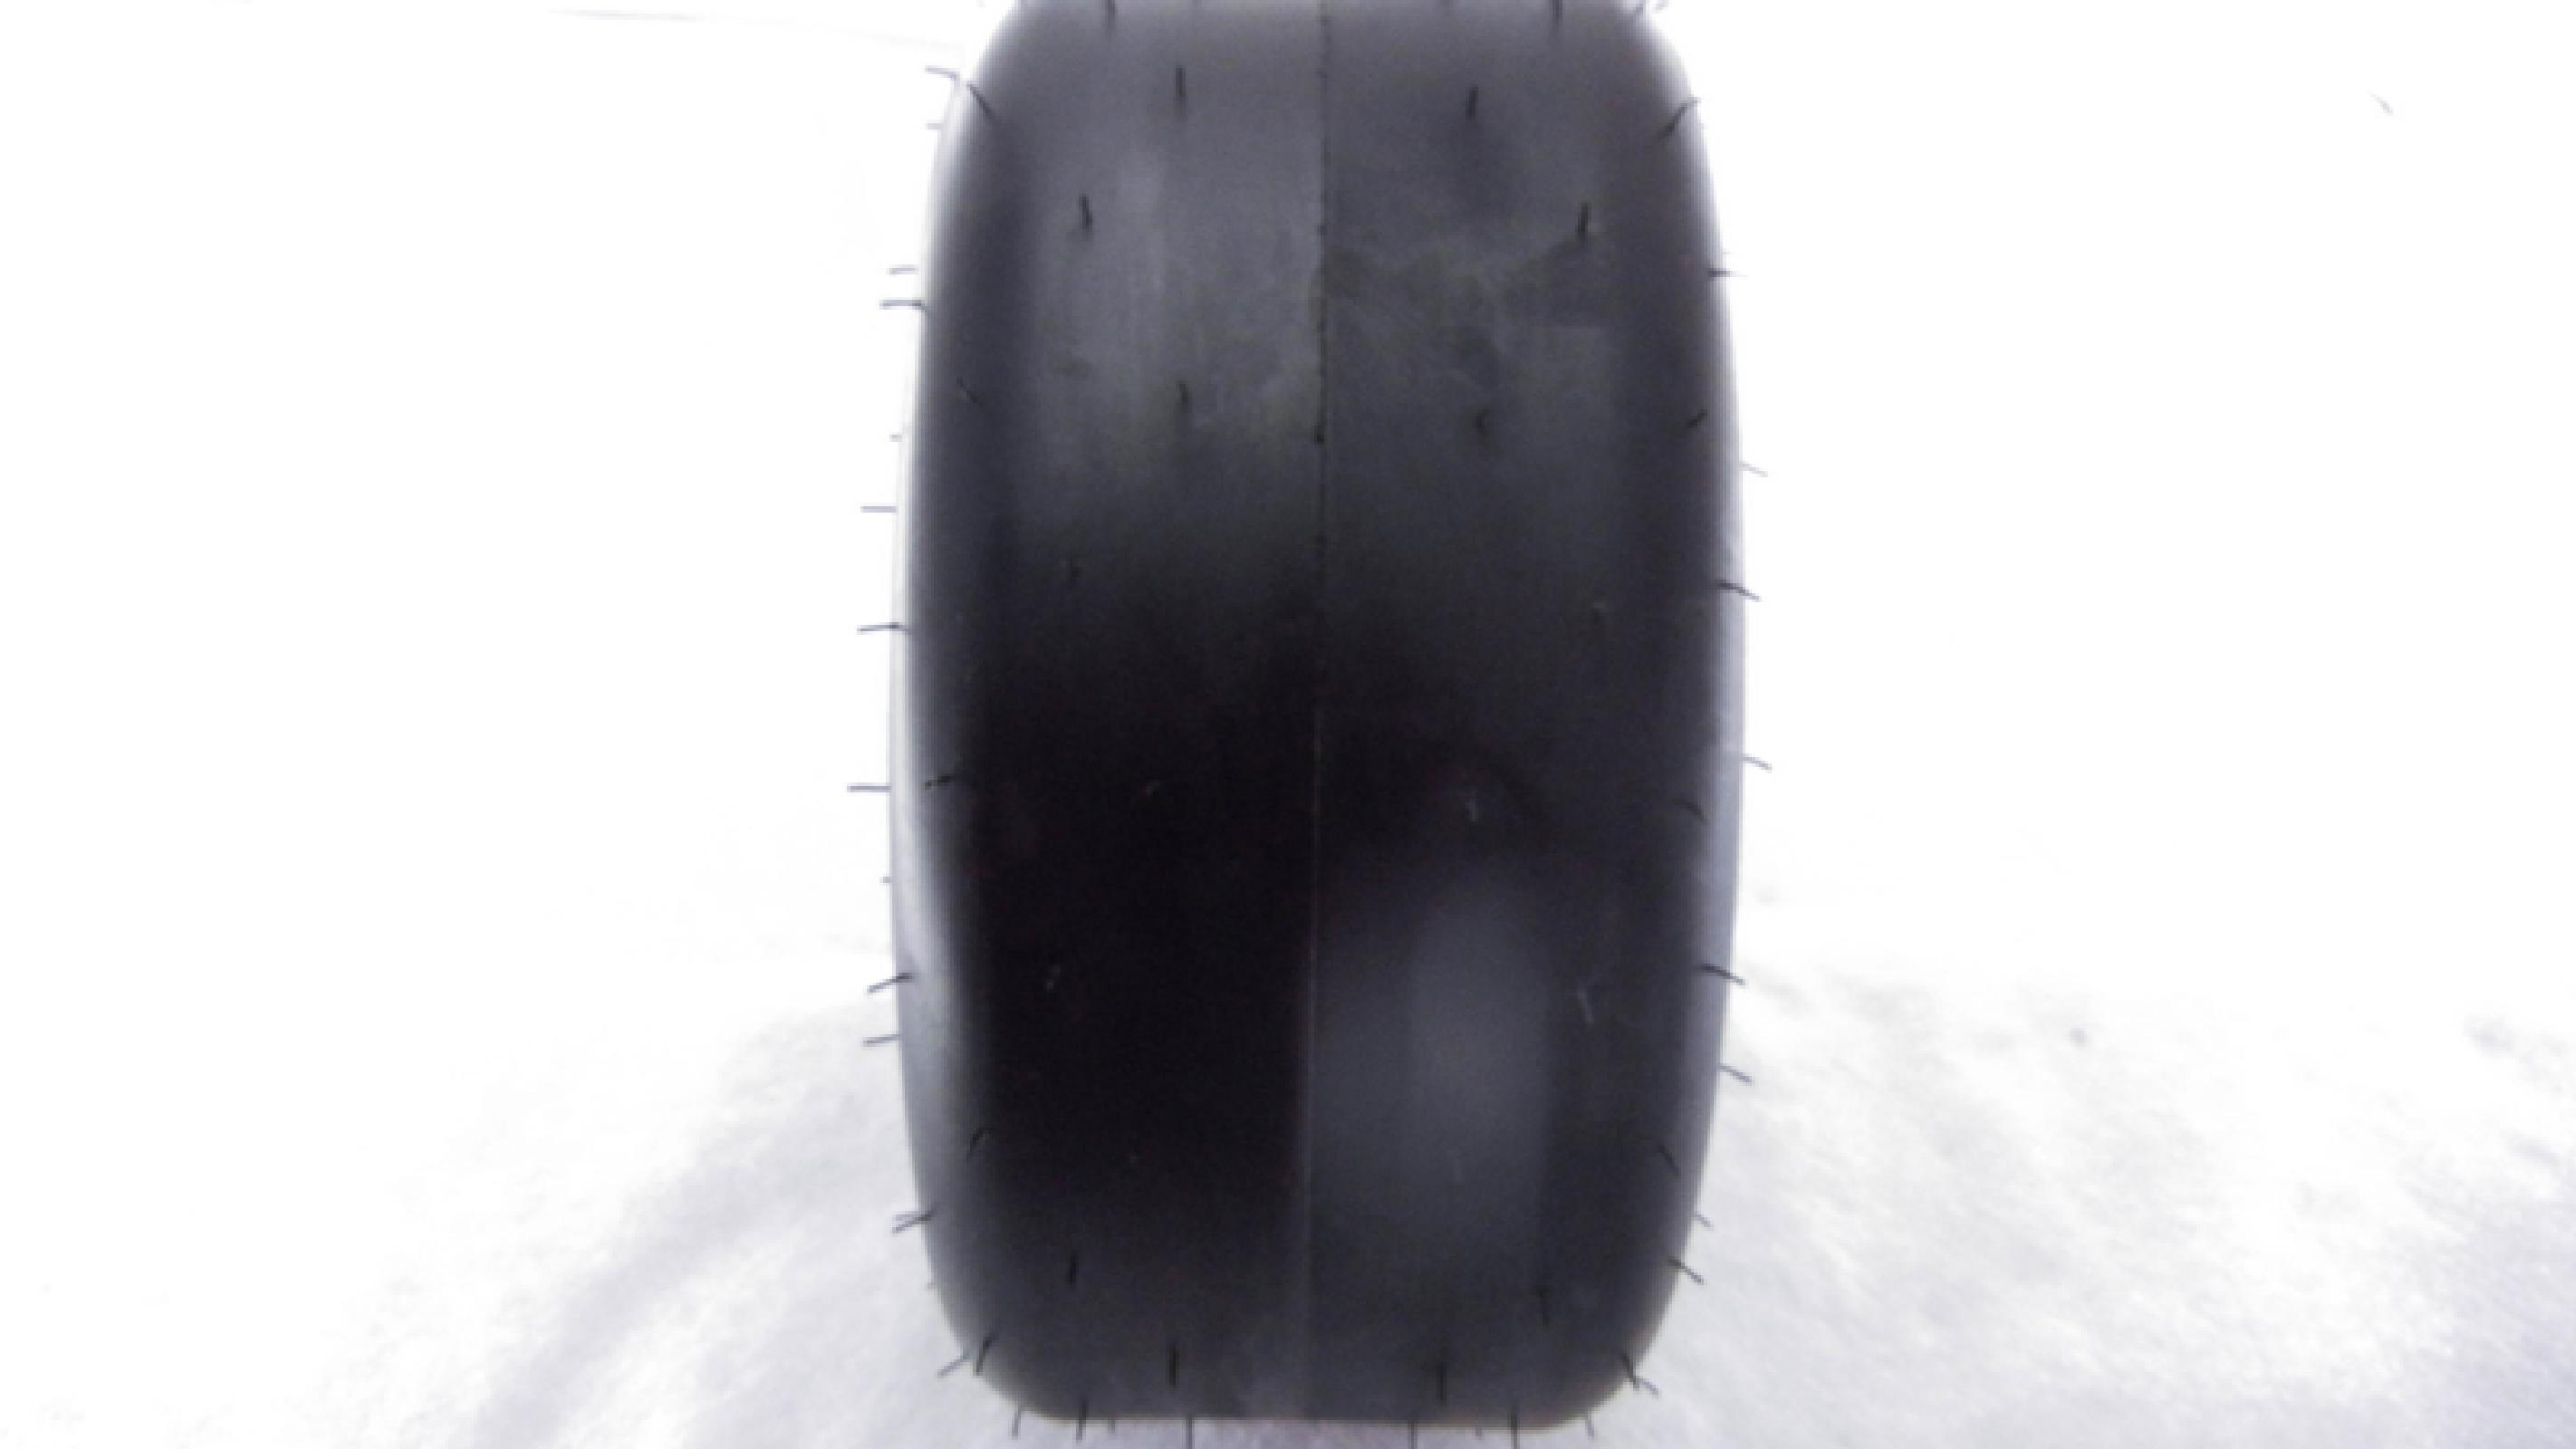 13X6.50-6 4 Ply 13 650 6 Repl. Carlisle Smooth Lawn Mower Tire p